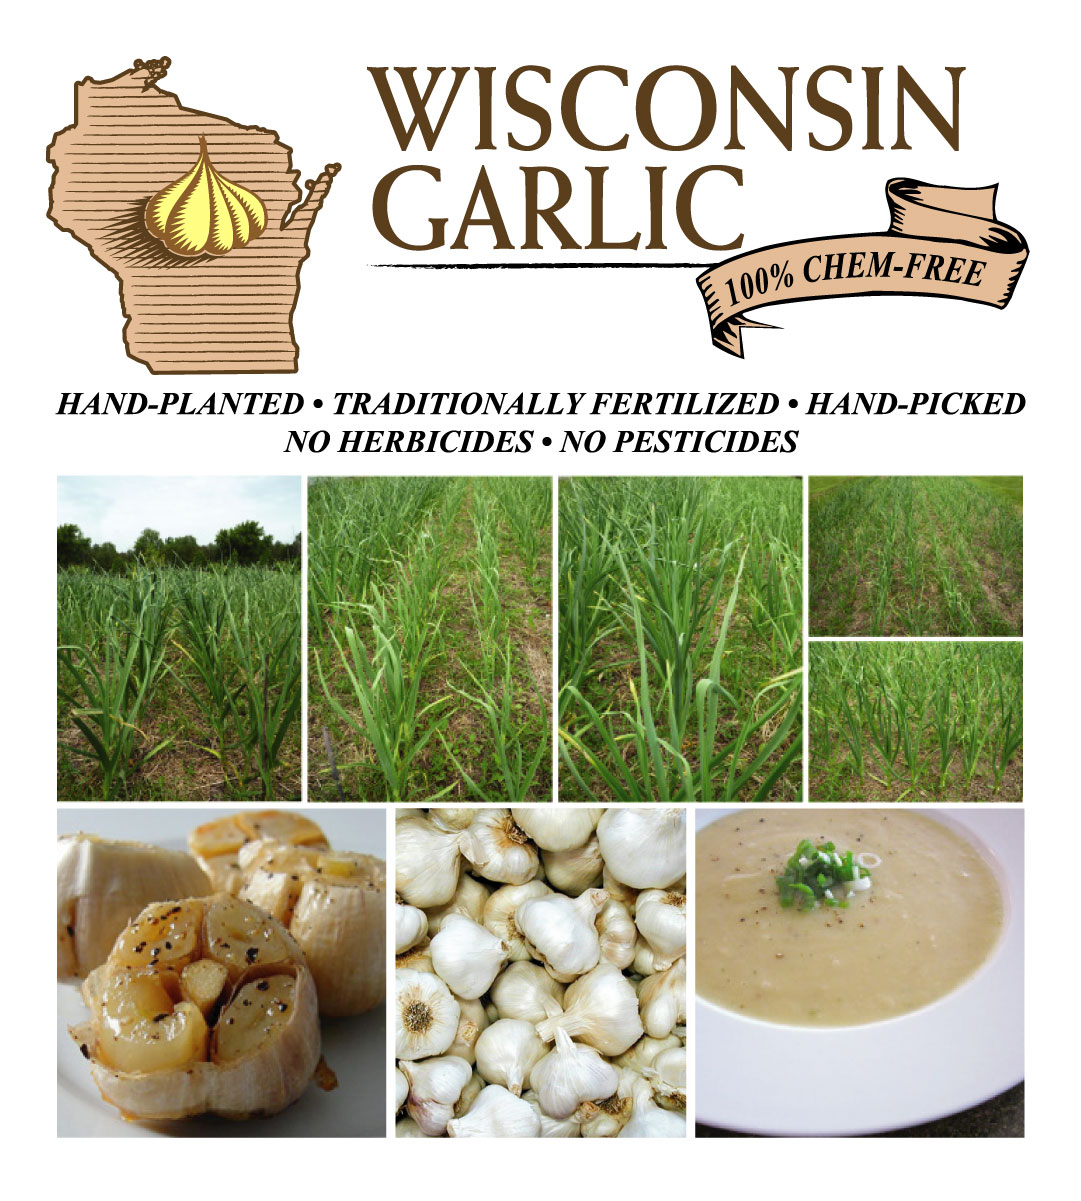 https://instantimagingcorp.com/products/wisconsingarlic/